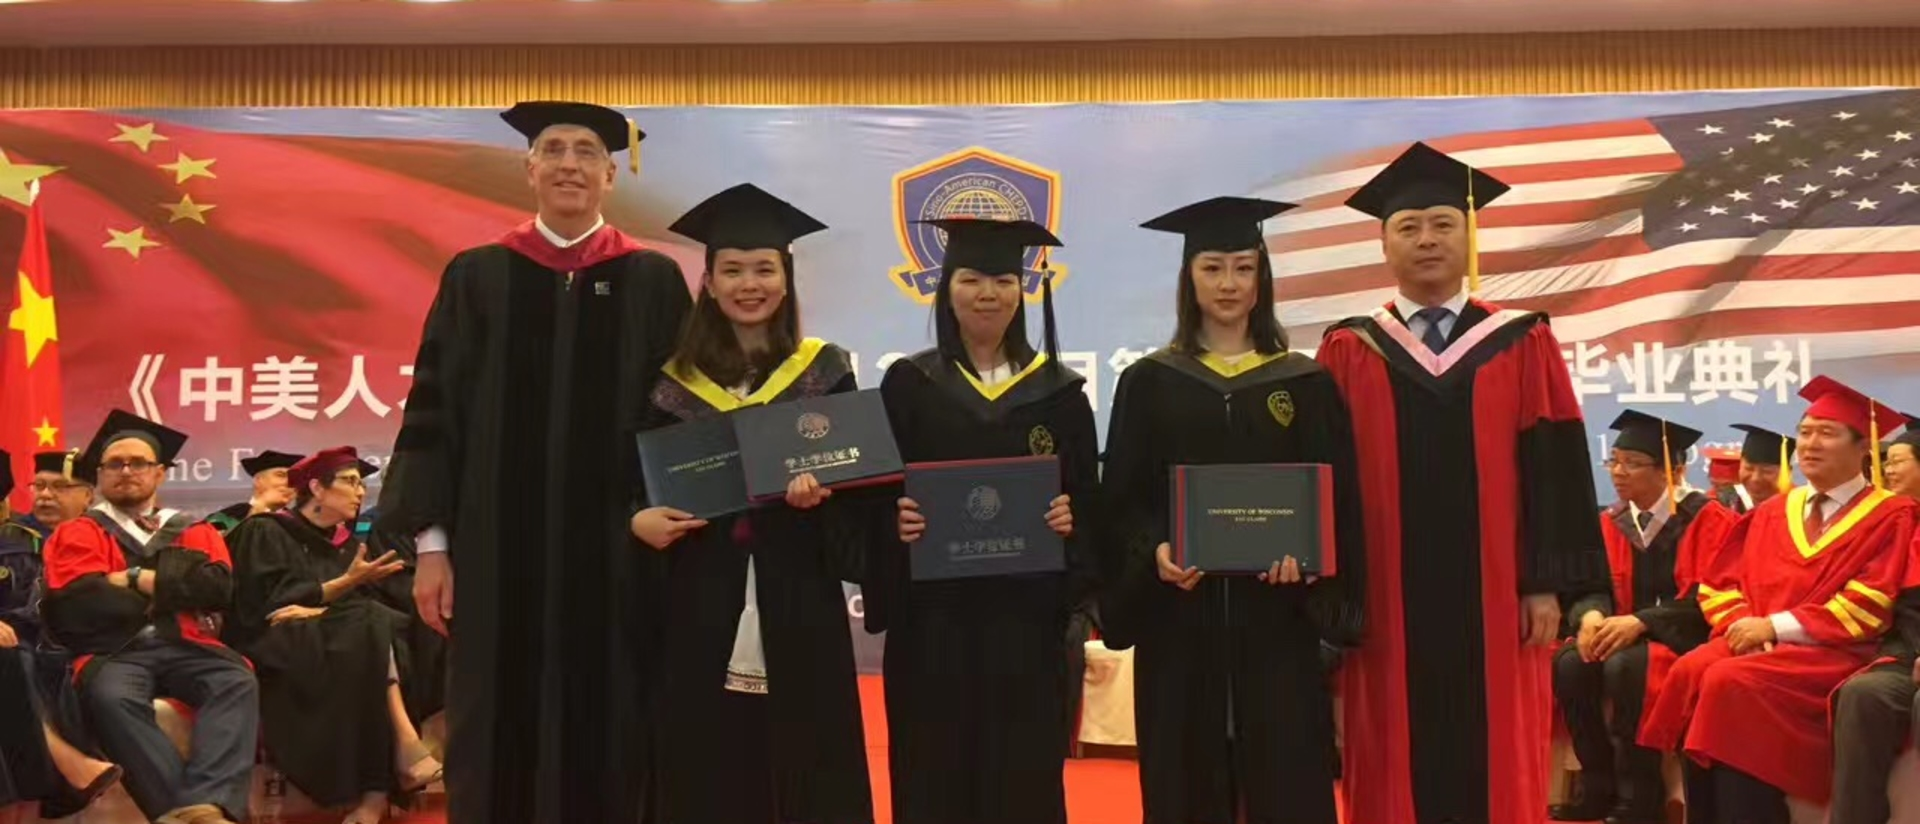 Dr. Michael Carney and graduates of the China 1-2-1 program.